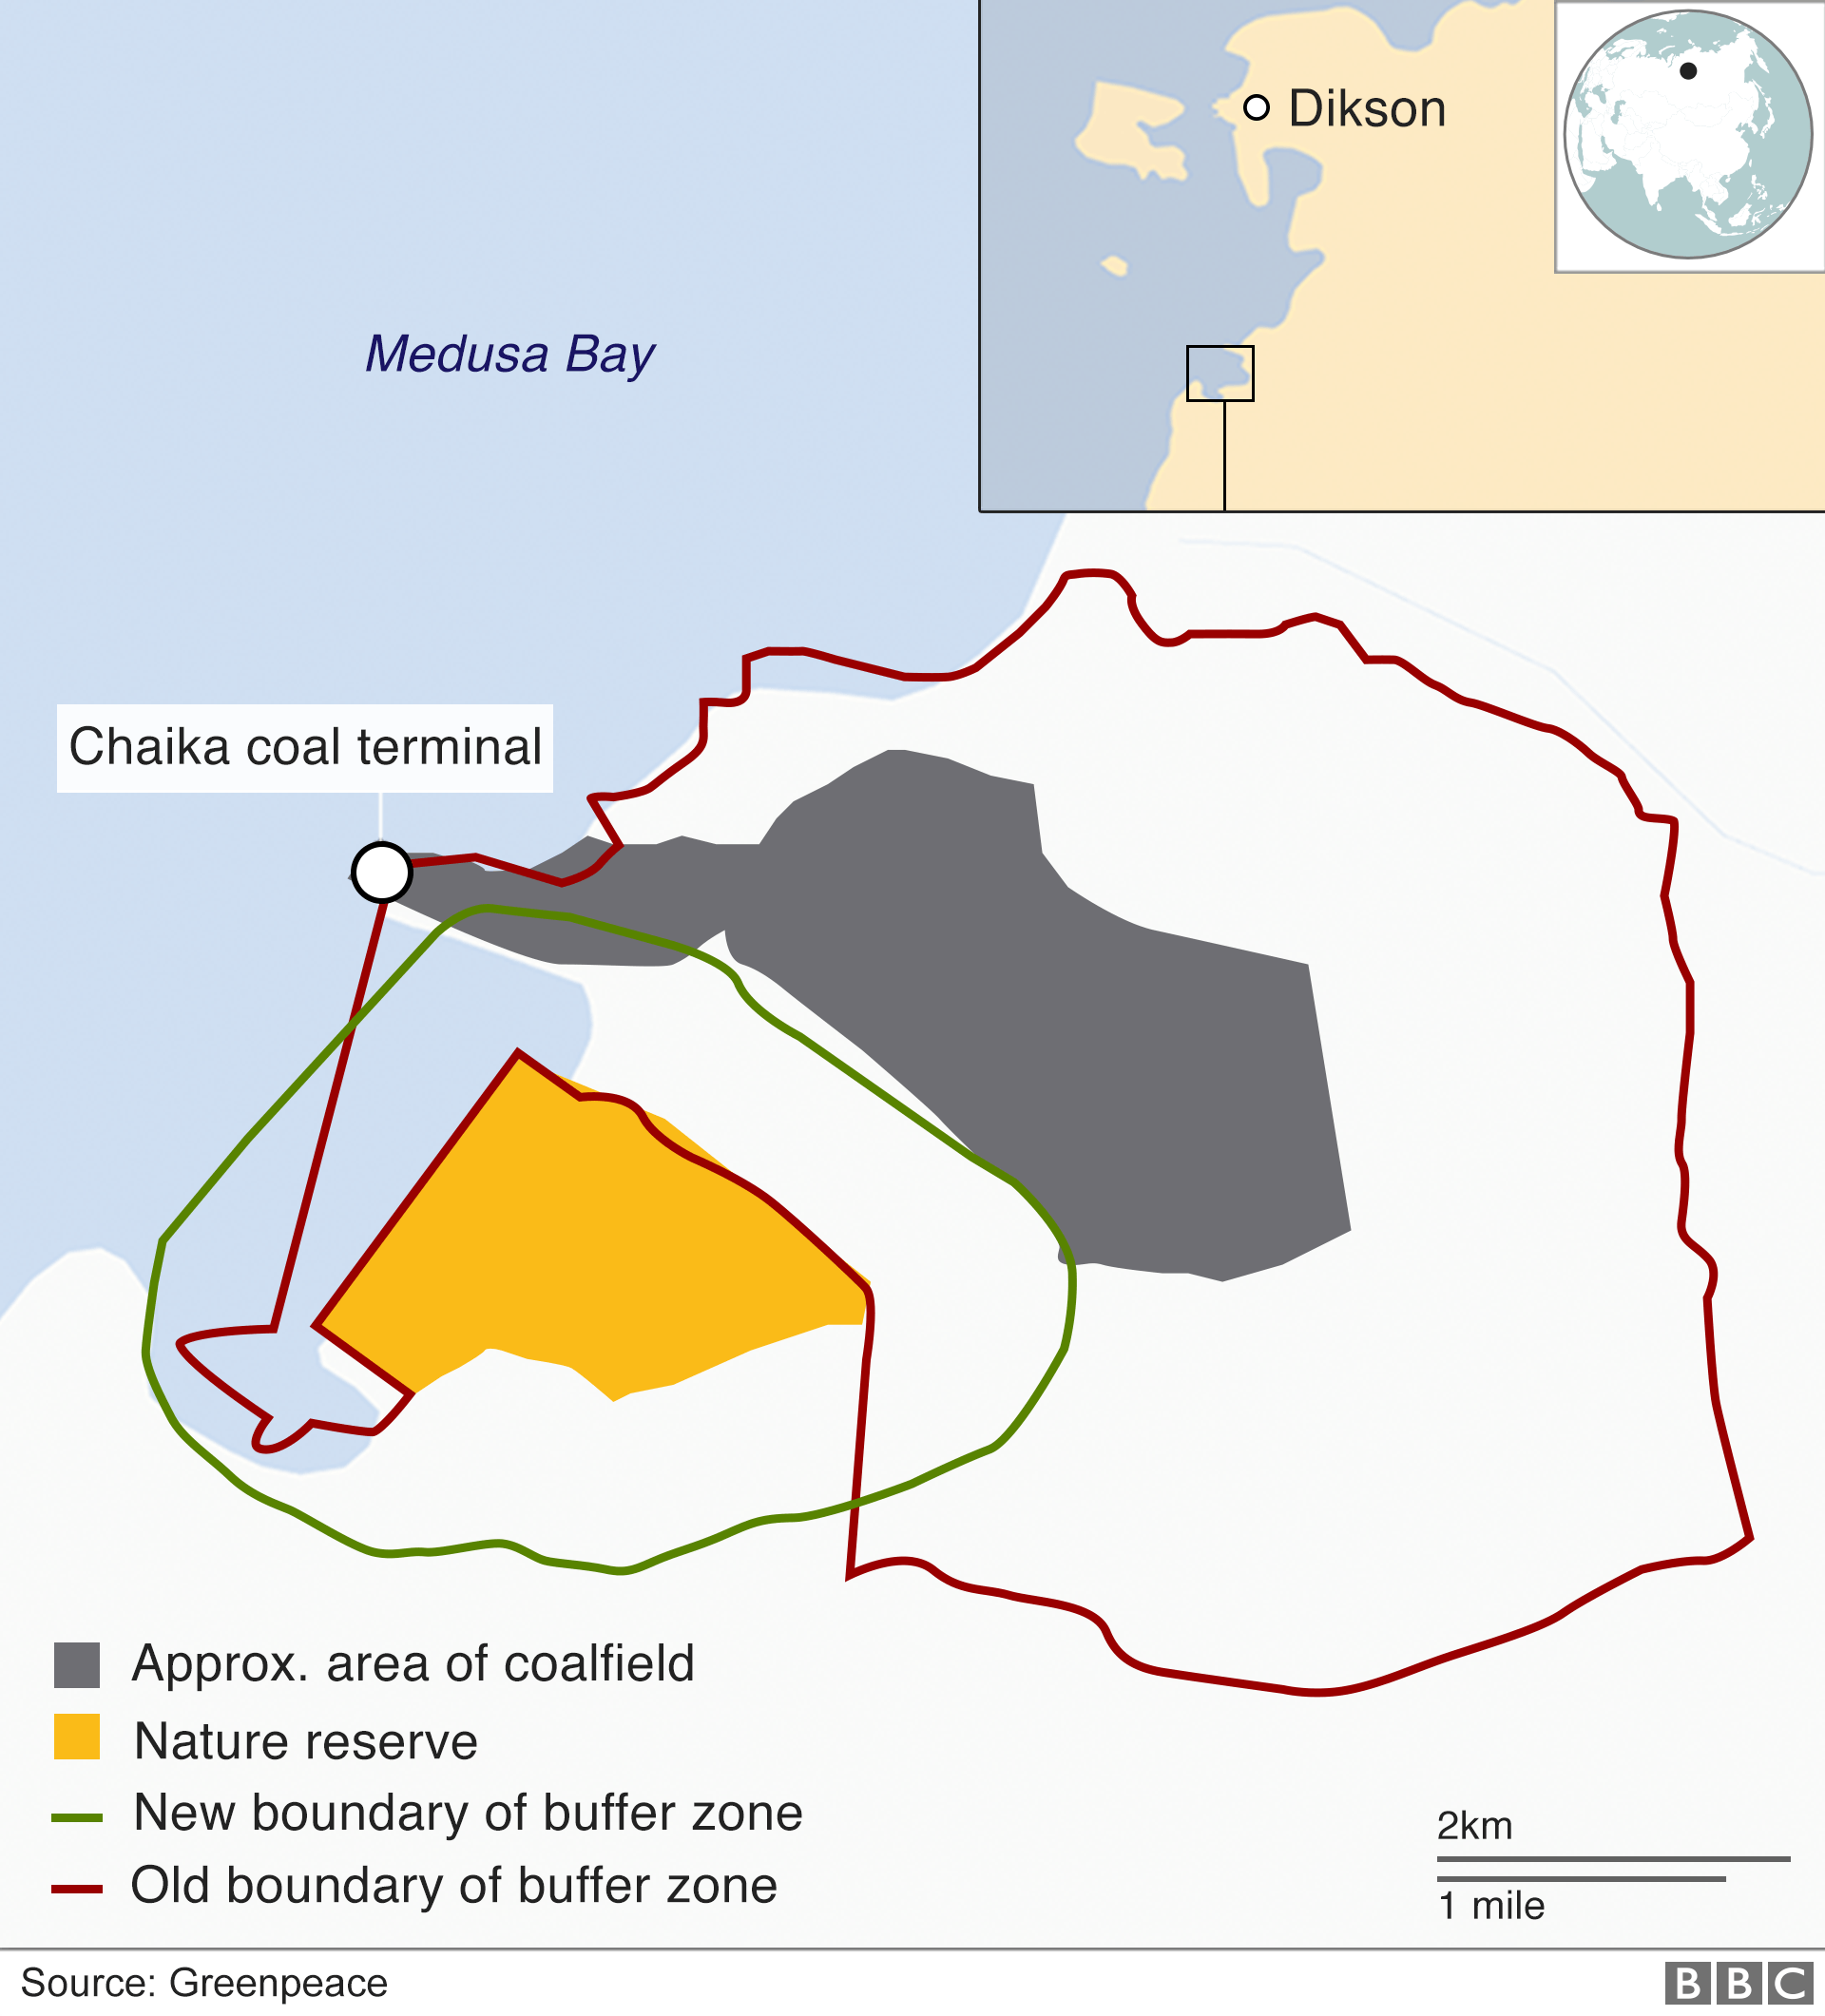 Map showing Medusa Bay coalfield and nature reserve, courtesy of Greenpeace